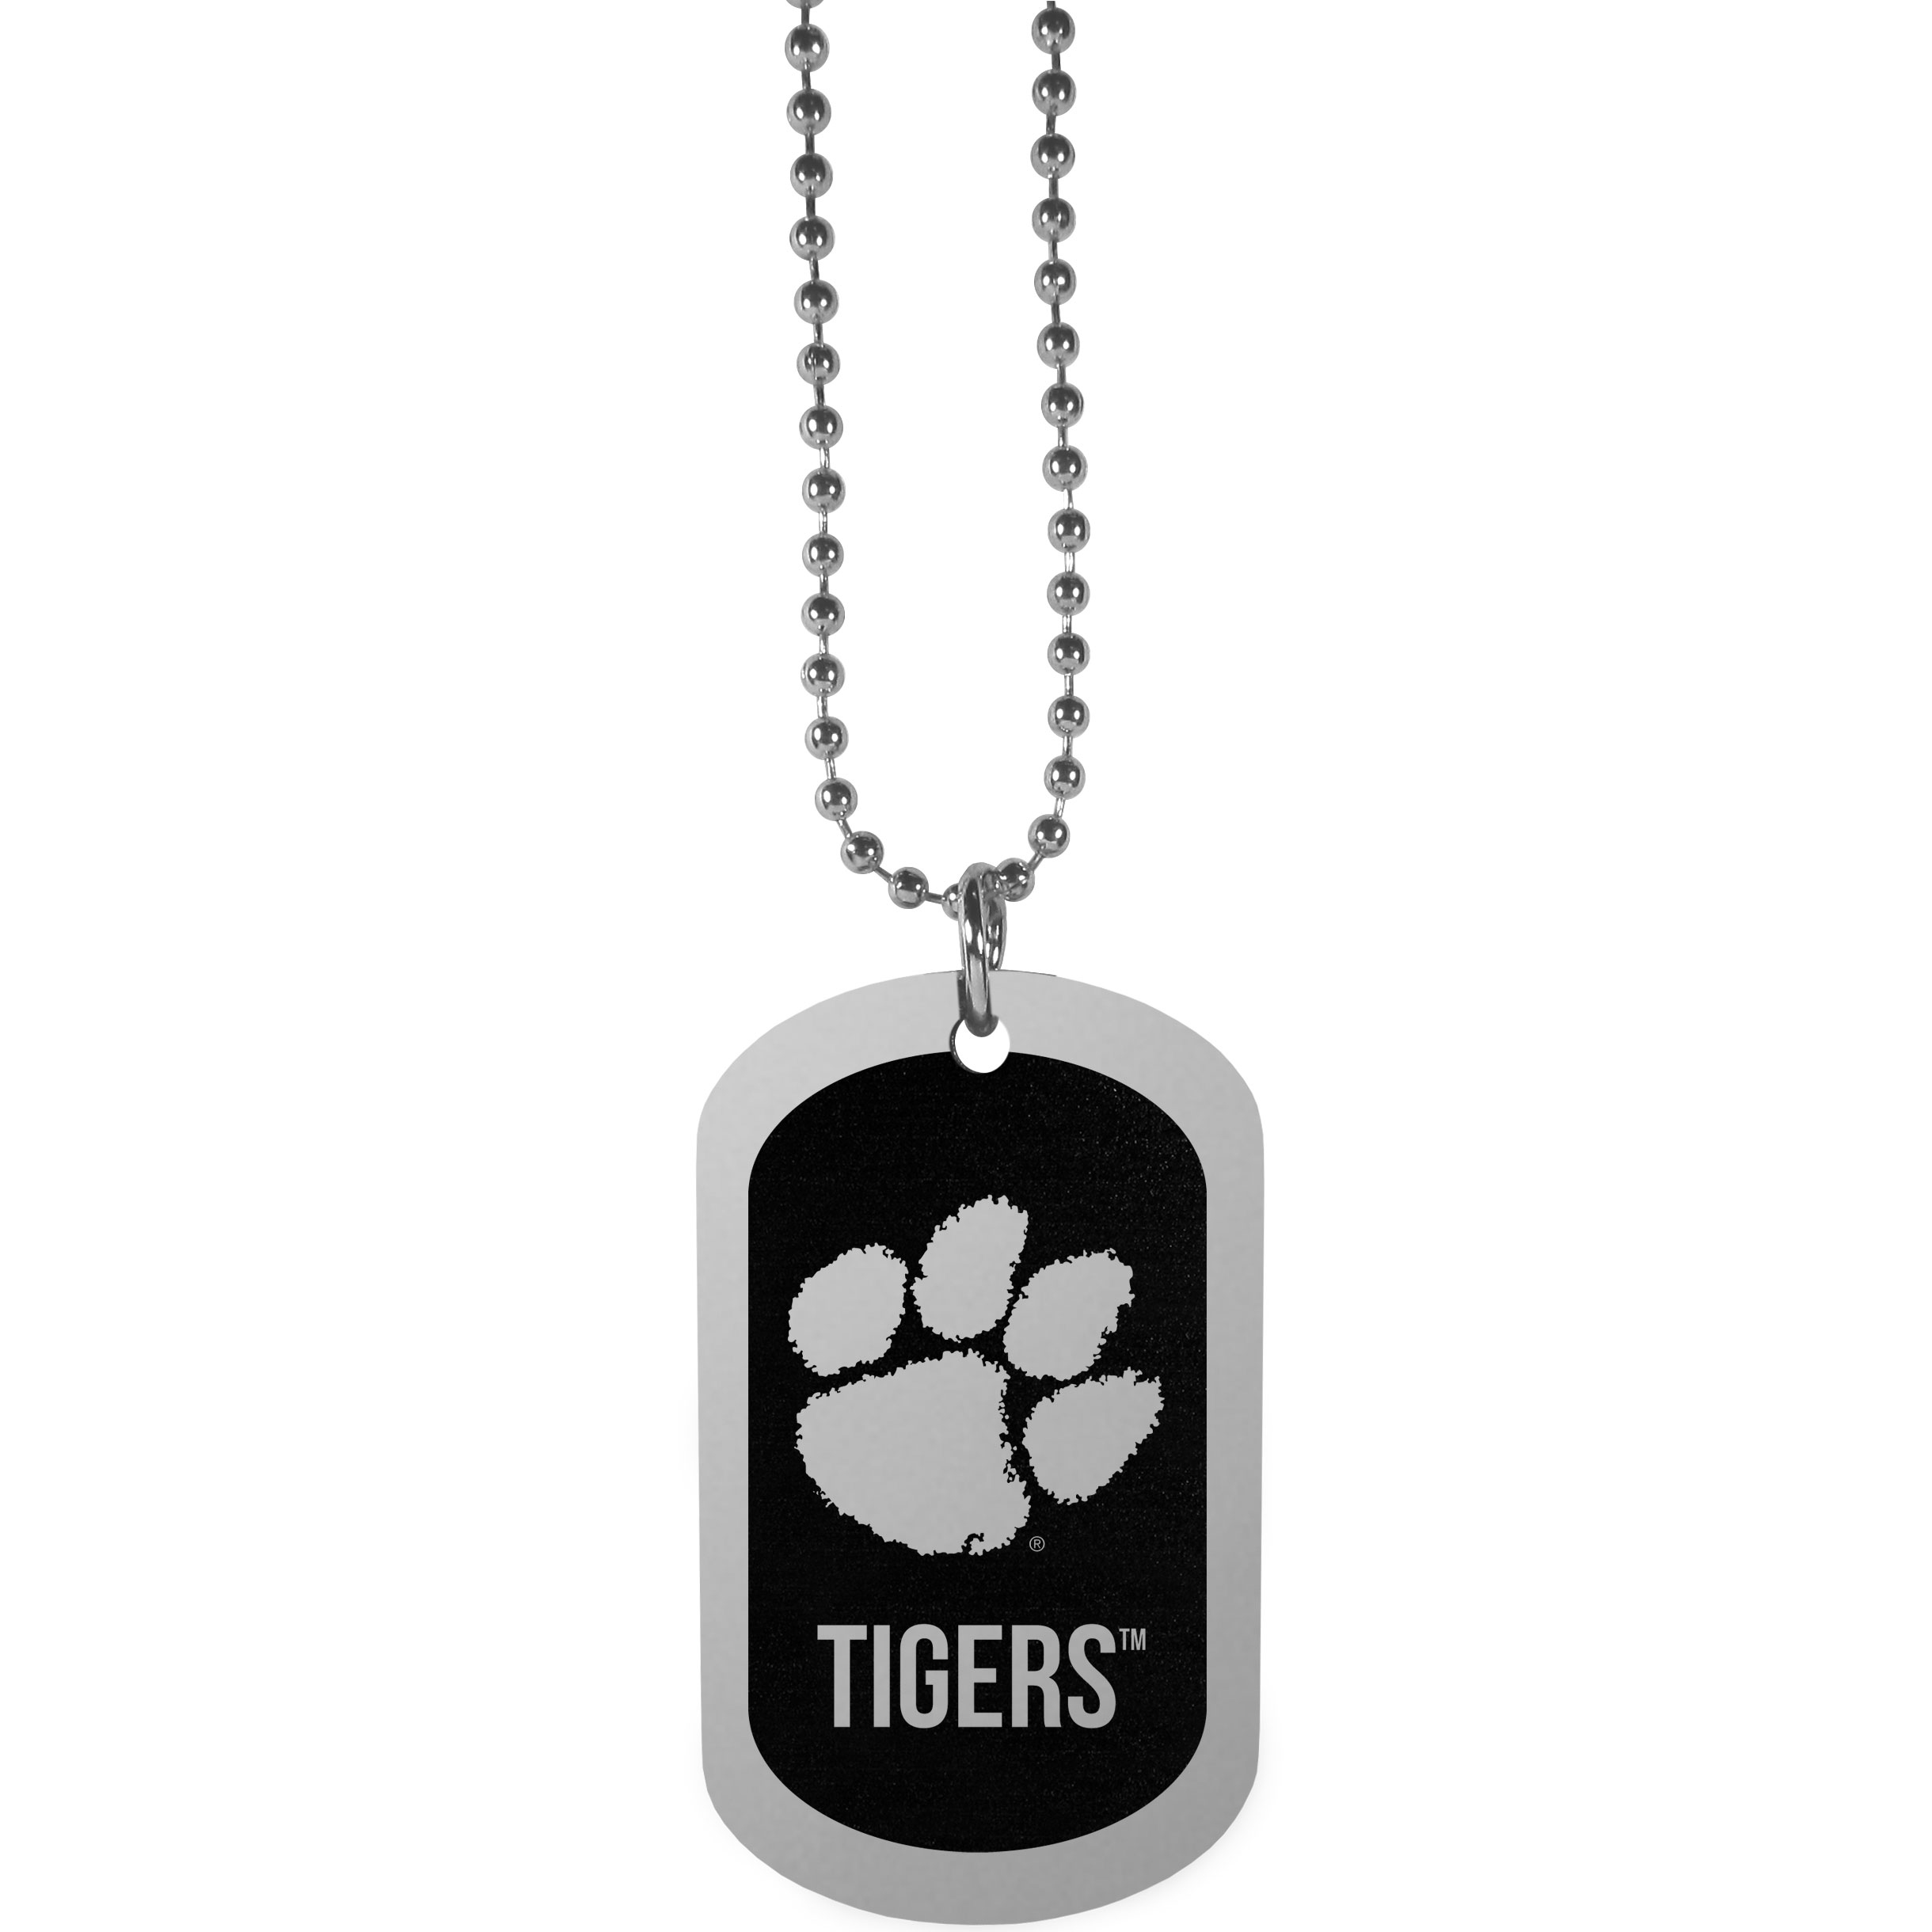 Clemson Tigers Chrome Tag Necklace - Dog tag necklaces are a fashion statement that is here to stay. The sporty version of the classic tag features a black printed over a high polish tag to create a bold and sporty look. The tag comes on a 26 inch ball chain with a ball and joint clasp. Any Clemson Tigers would be proud to wear this attractive fashion accessory.